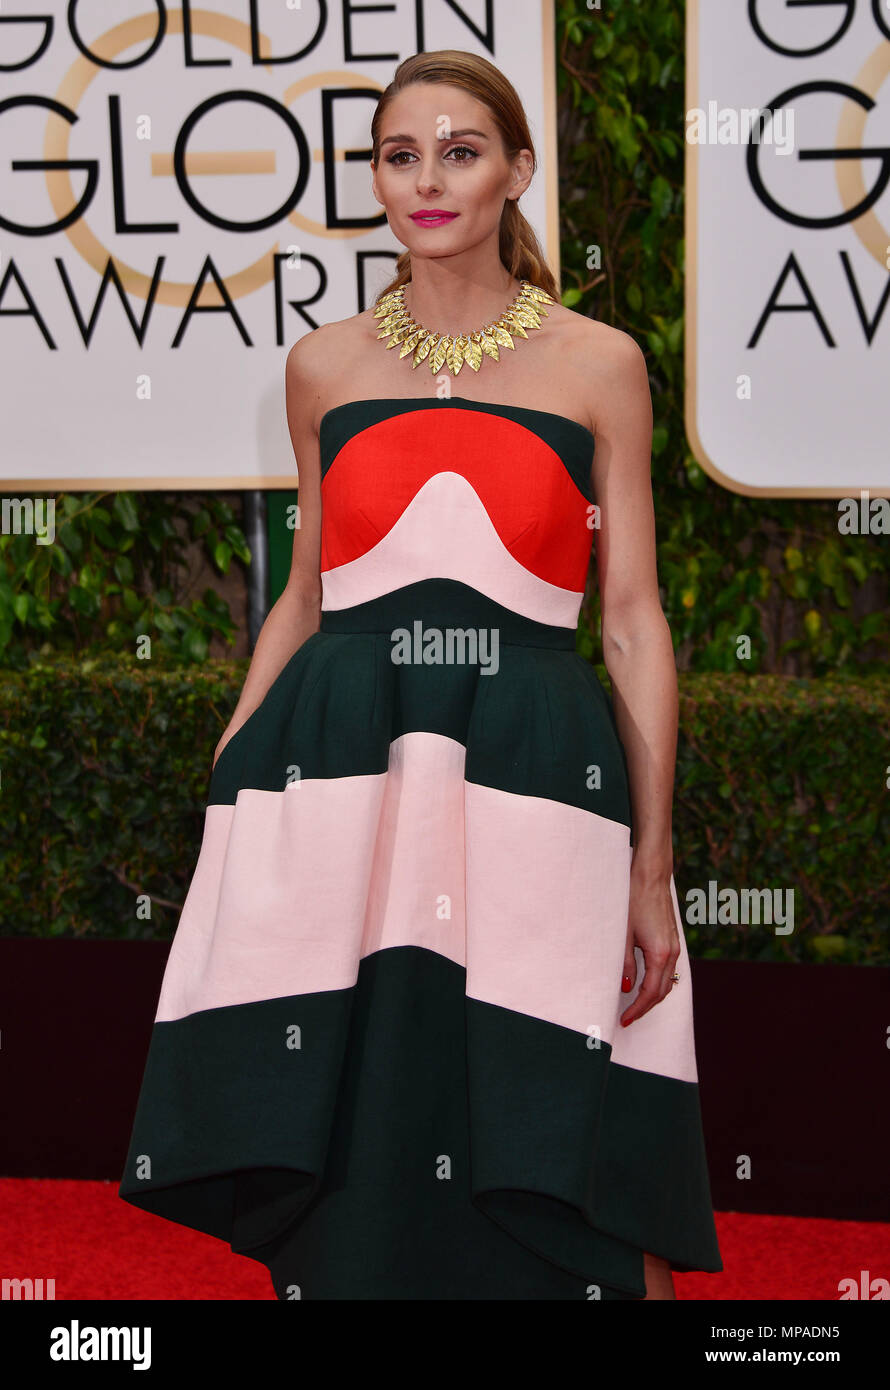 778ffe37f5 Olivia Palermo 468 at the 2016 Golden Globe Awards at the Beverly Hilton in  Los Angeles